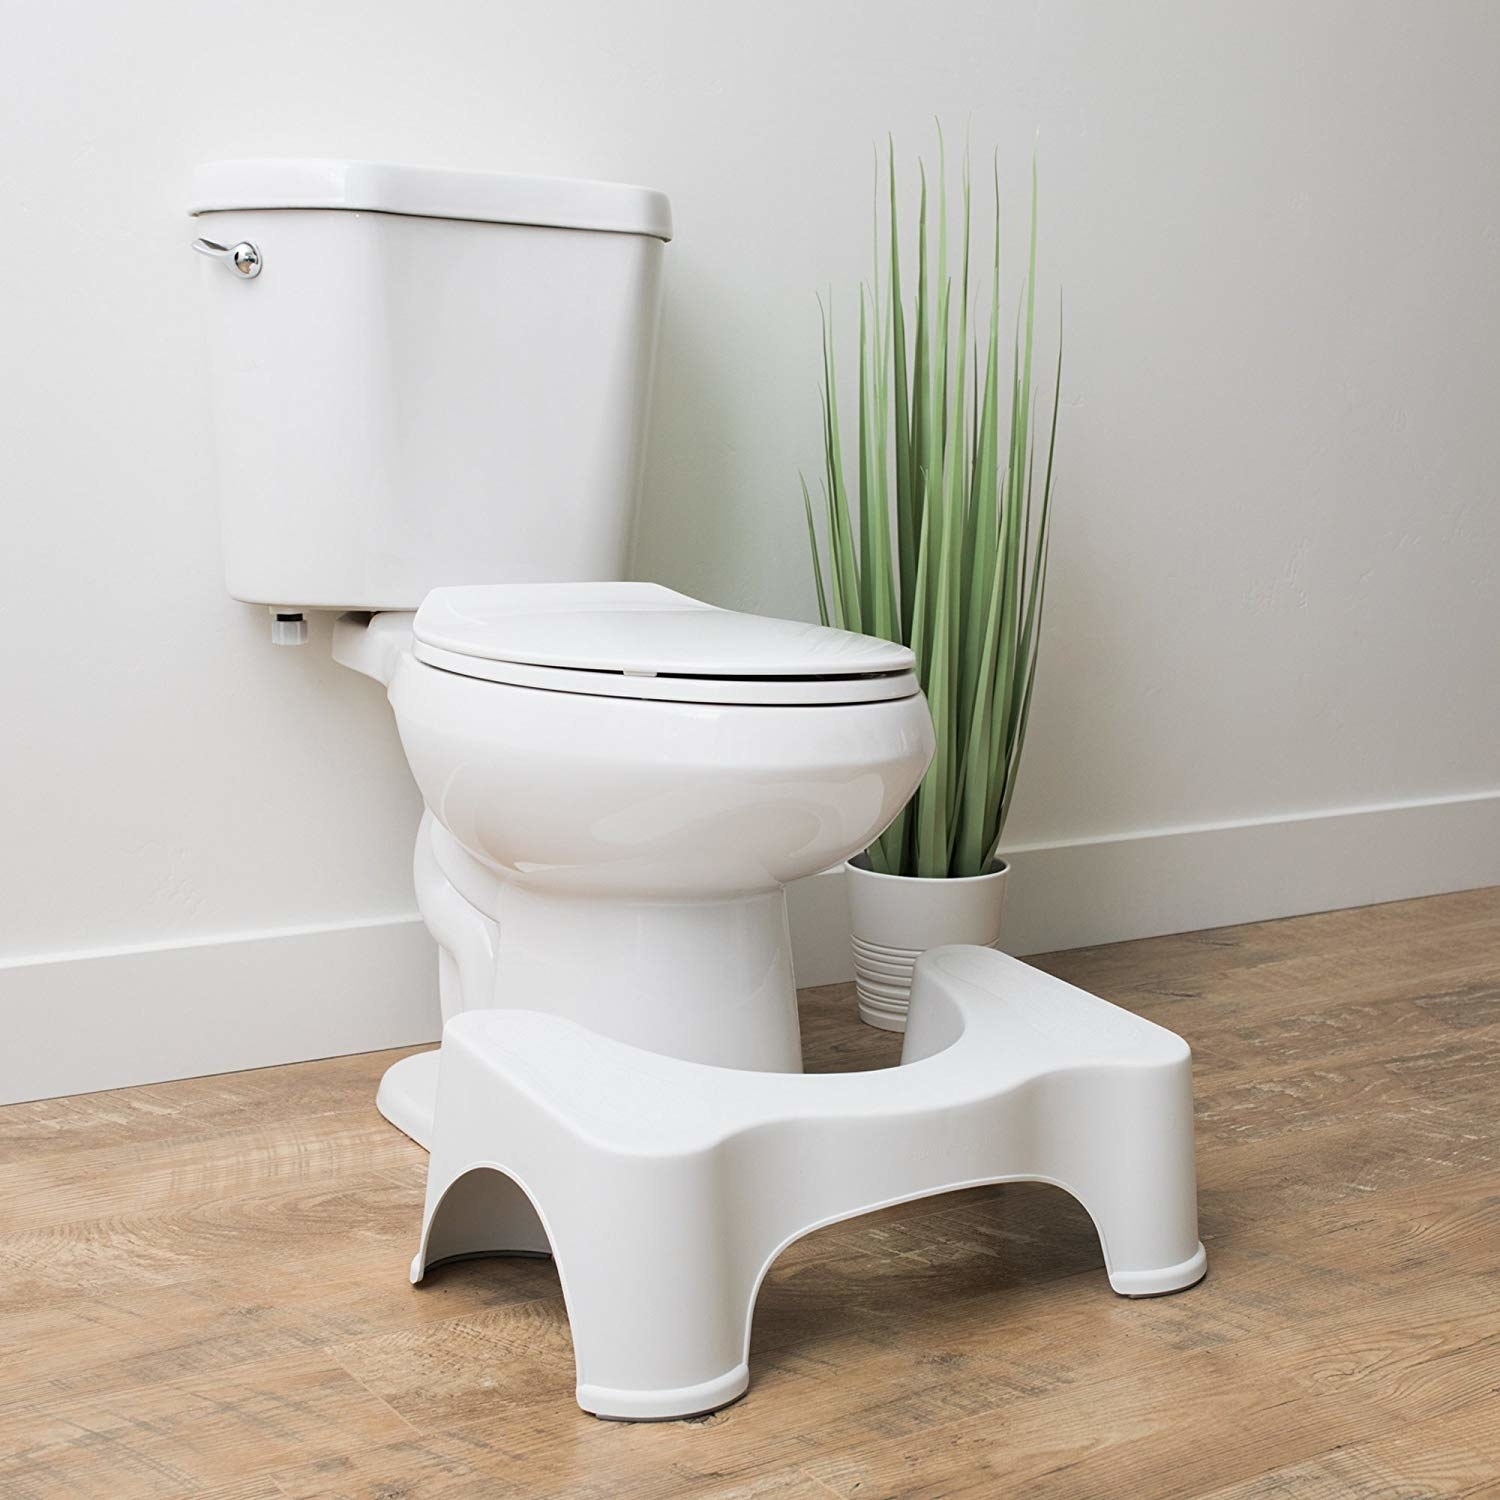 The Squatty Potty placed next to a toilet